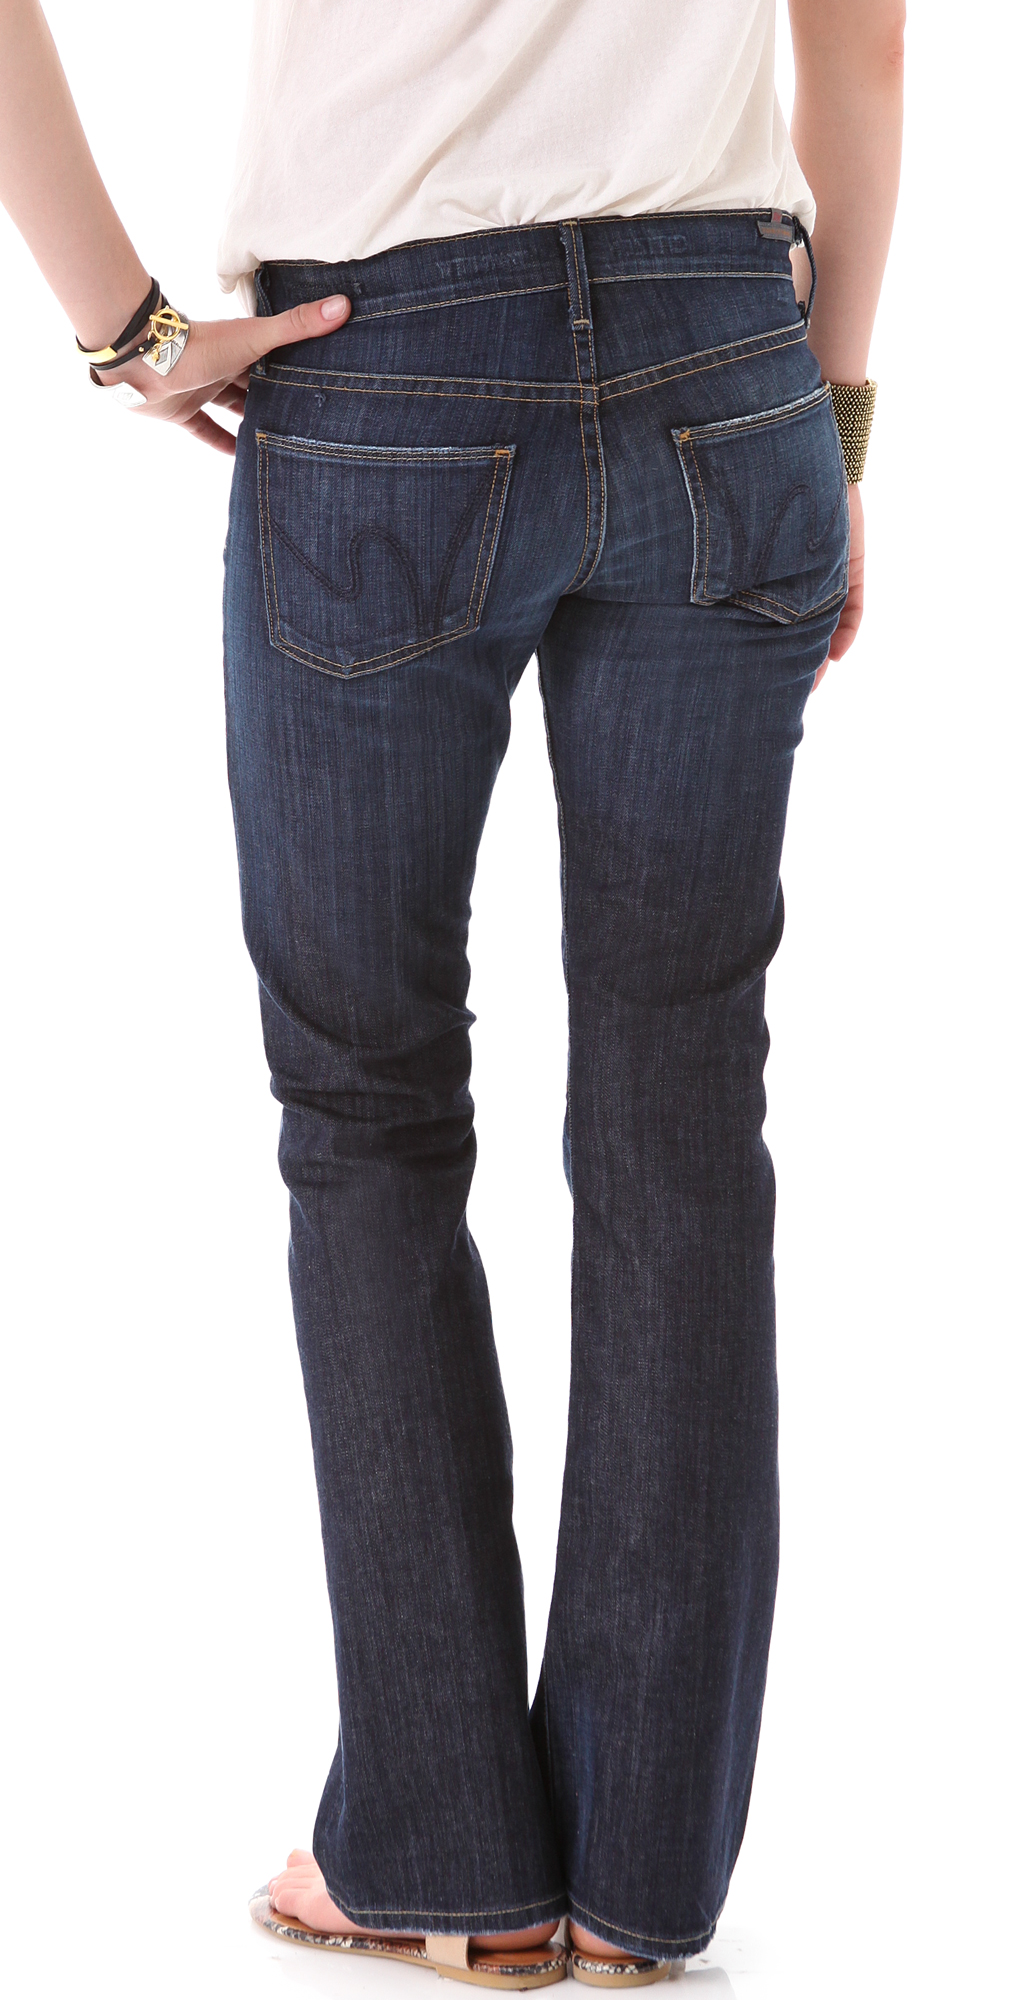 ff0d176eee5 Citizens of Humanity Dita Petite Boot Cut Jeans   SHOPBOP